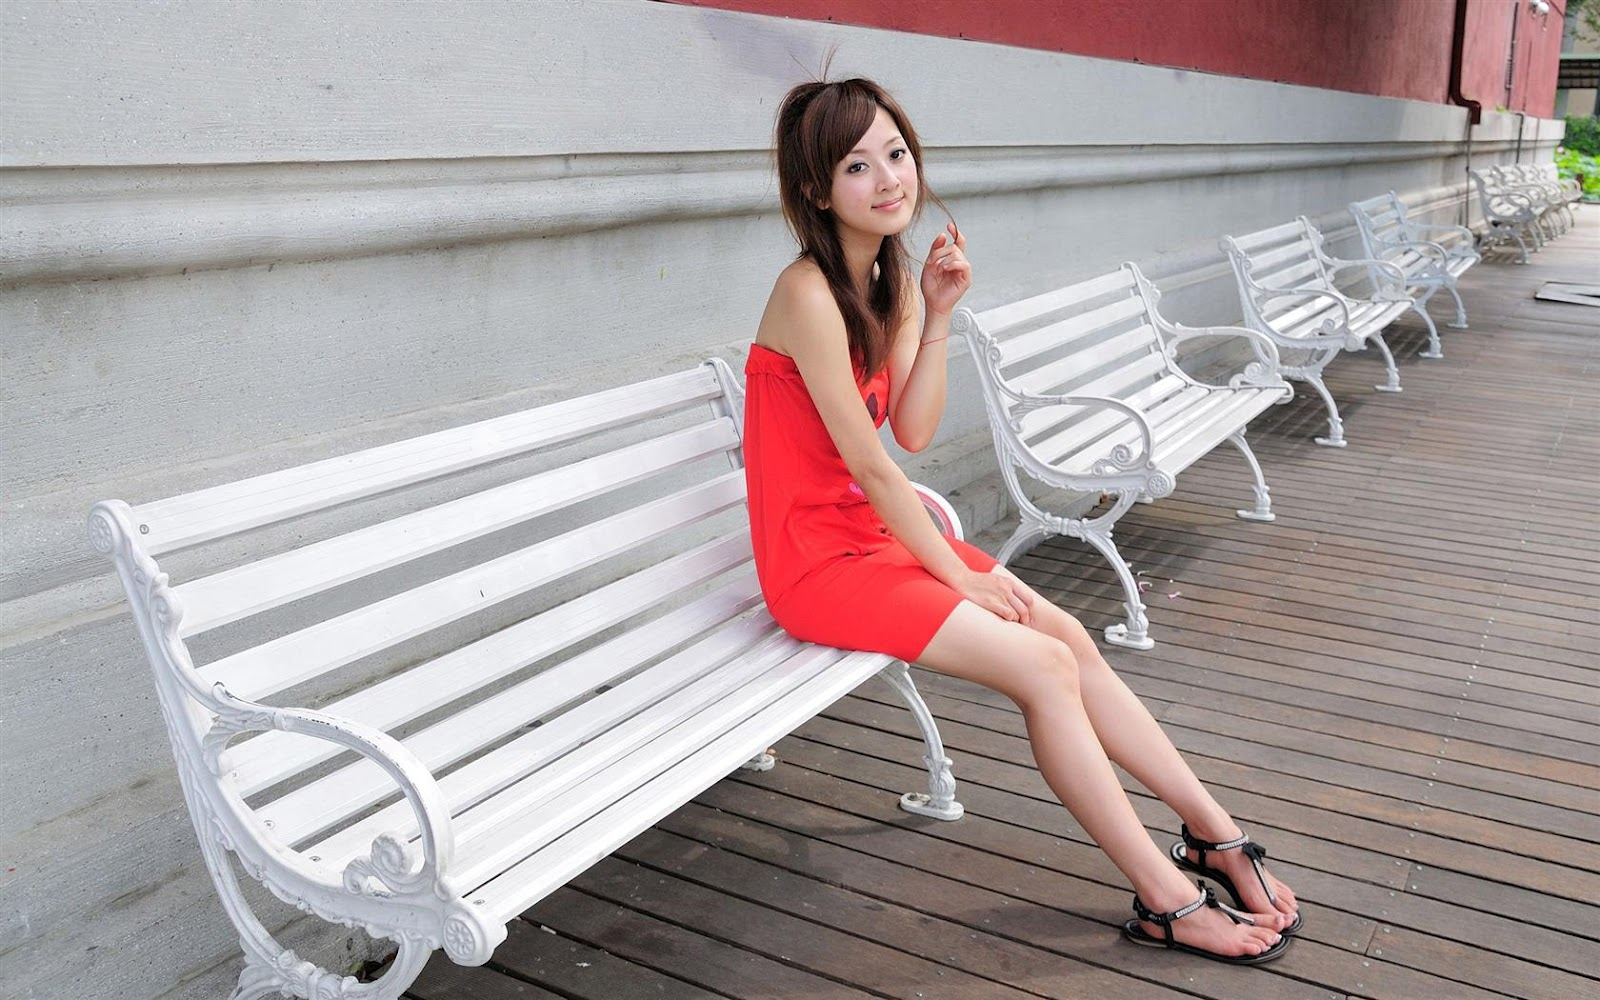 saint lucas single asian girls Meet asian single women in saint lucas interested in dating new people on zoosk date smarter and meet more singles interested in dating.